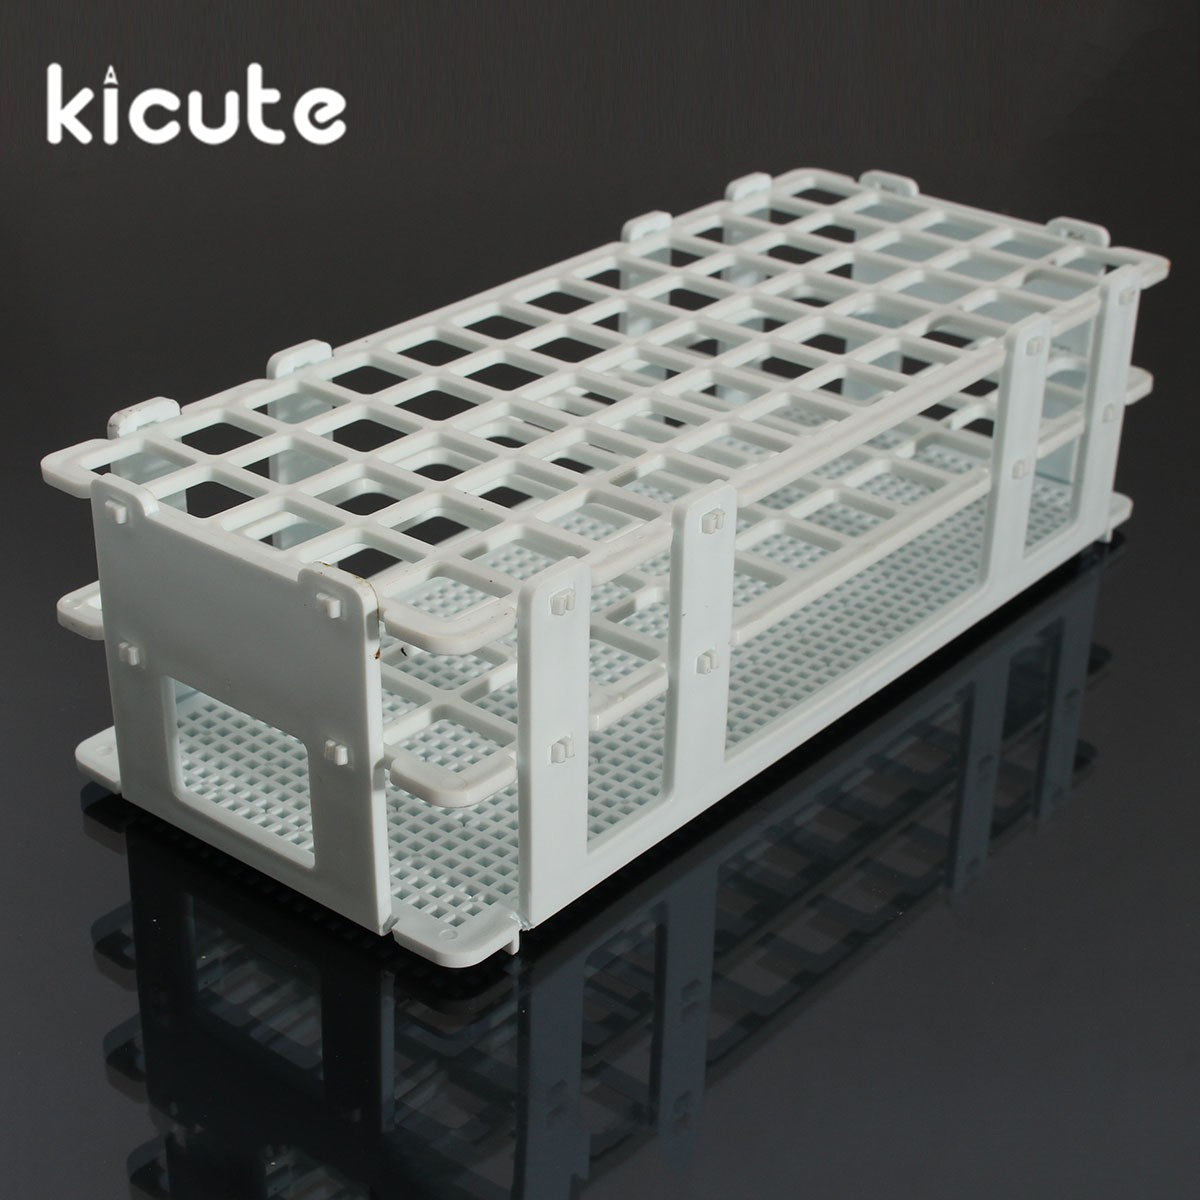 Kicute 60 Holes 16mm 3 Layers Plastic Test Tube Rack Holder Support Burette Stand Laboratory Test tube Stand Shelf Lab Supplies 60 piece tube 16x150mm clear plastic test tube set with caps and rack